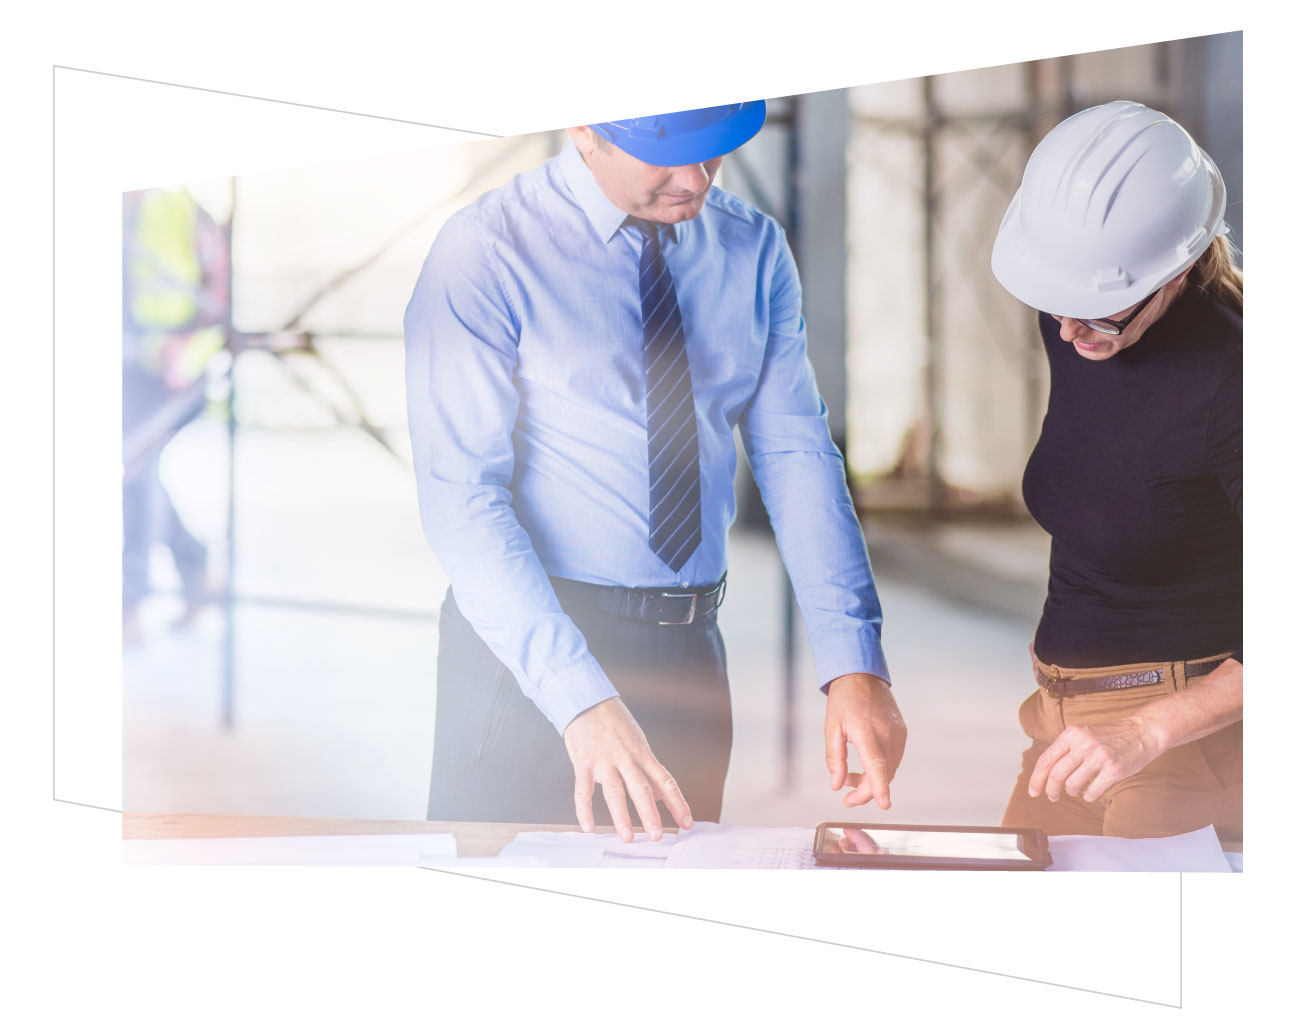 two real estate managers with hard hats looking at blueprints on ipad